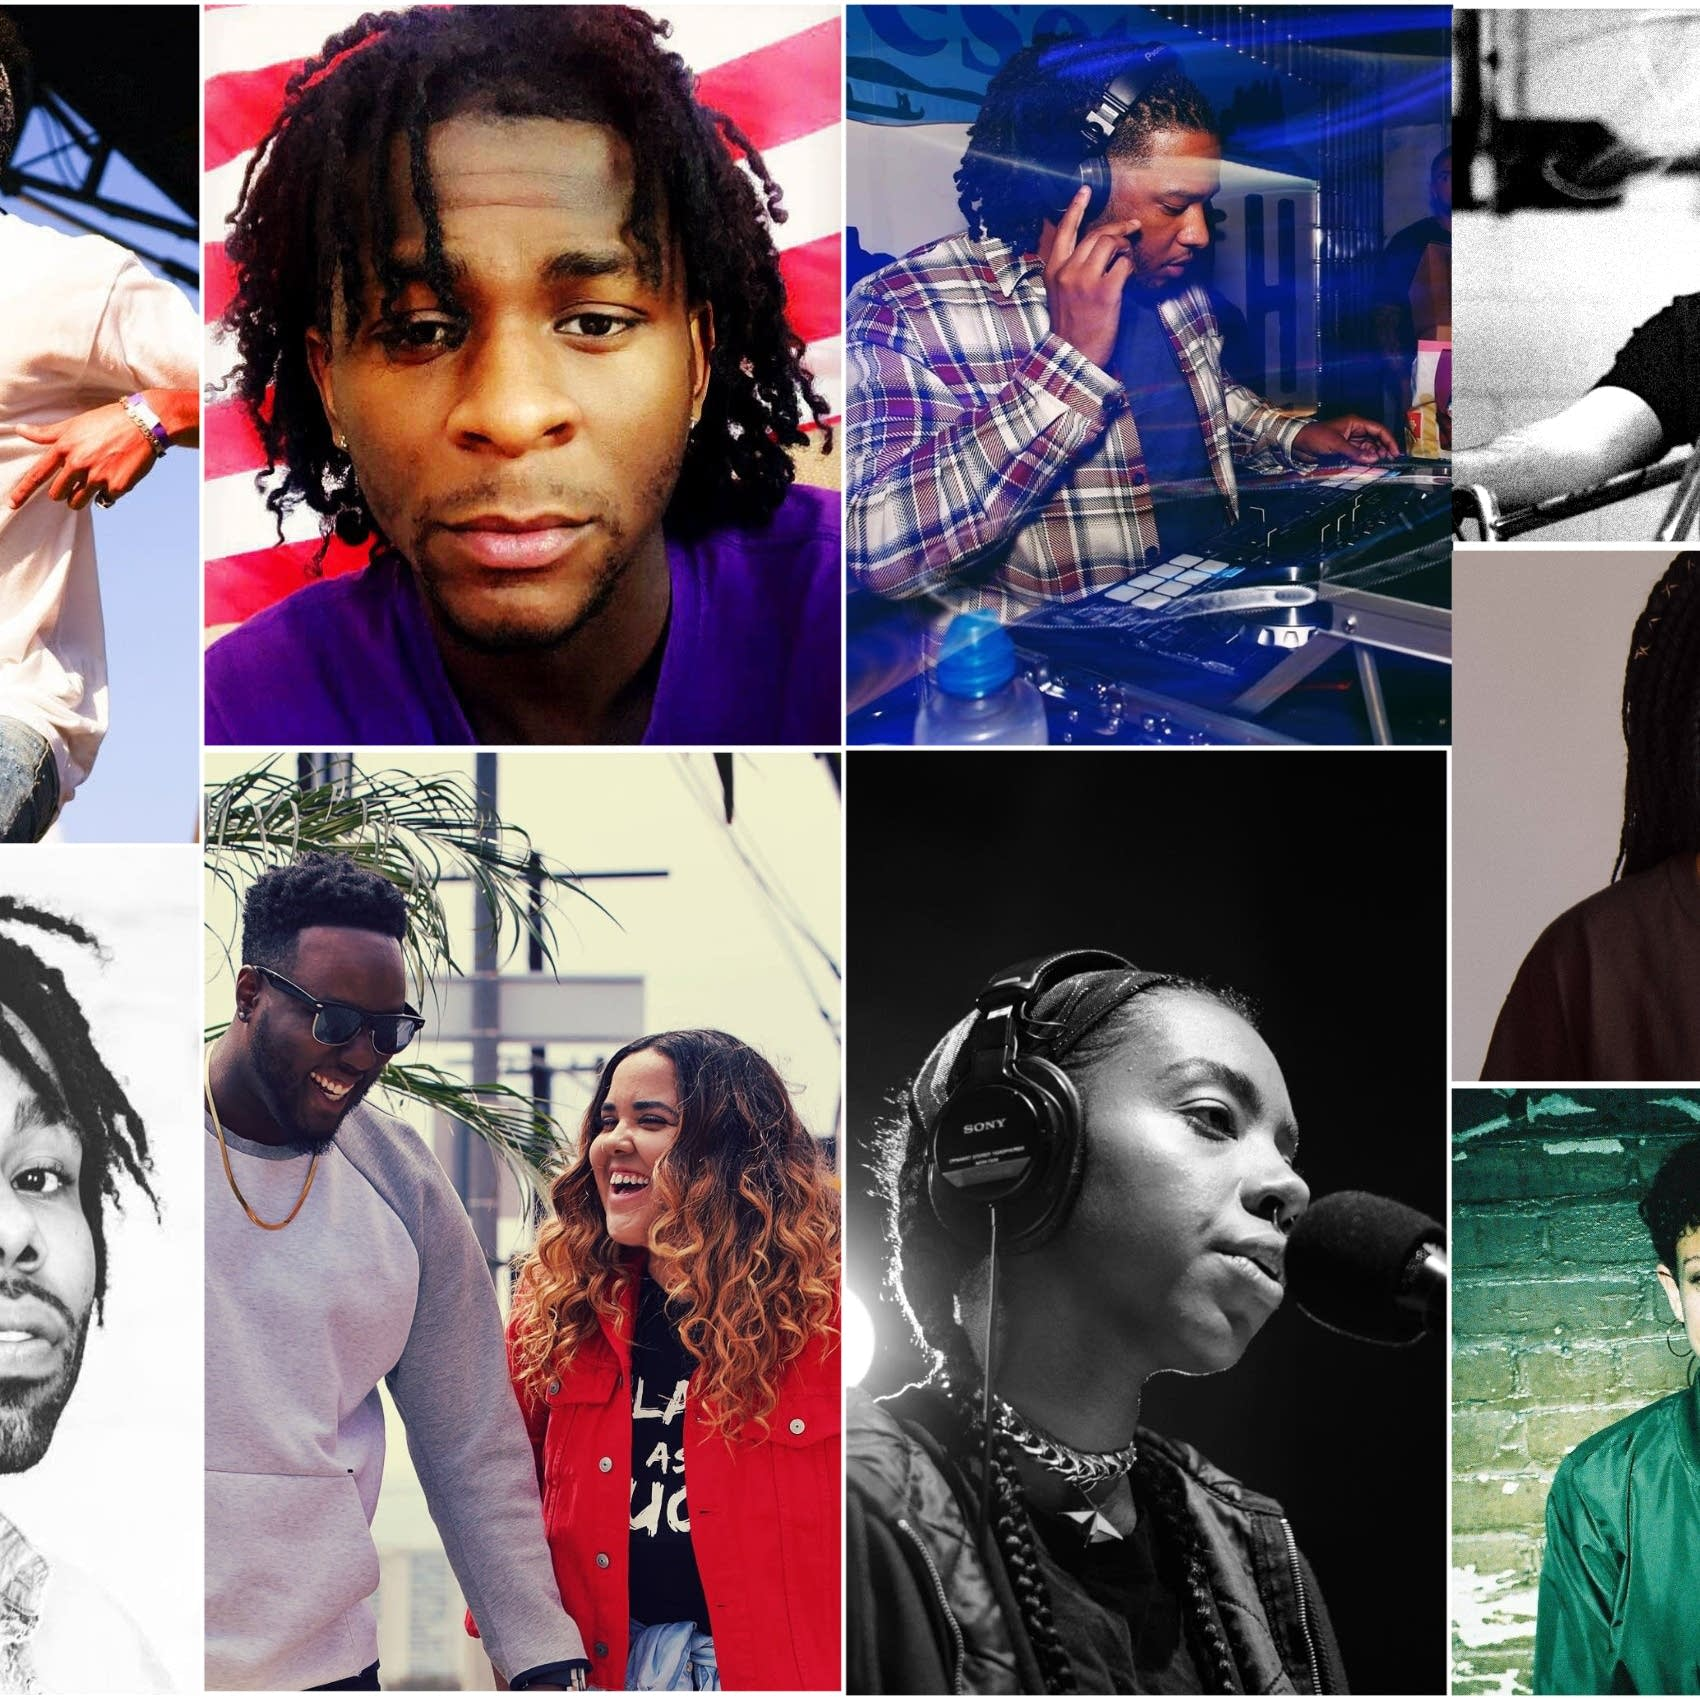 Collage of local Hip Hop artists